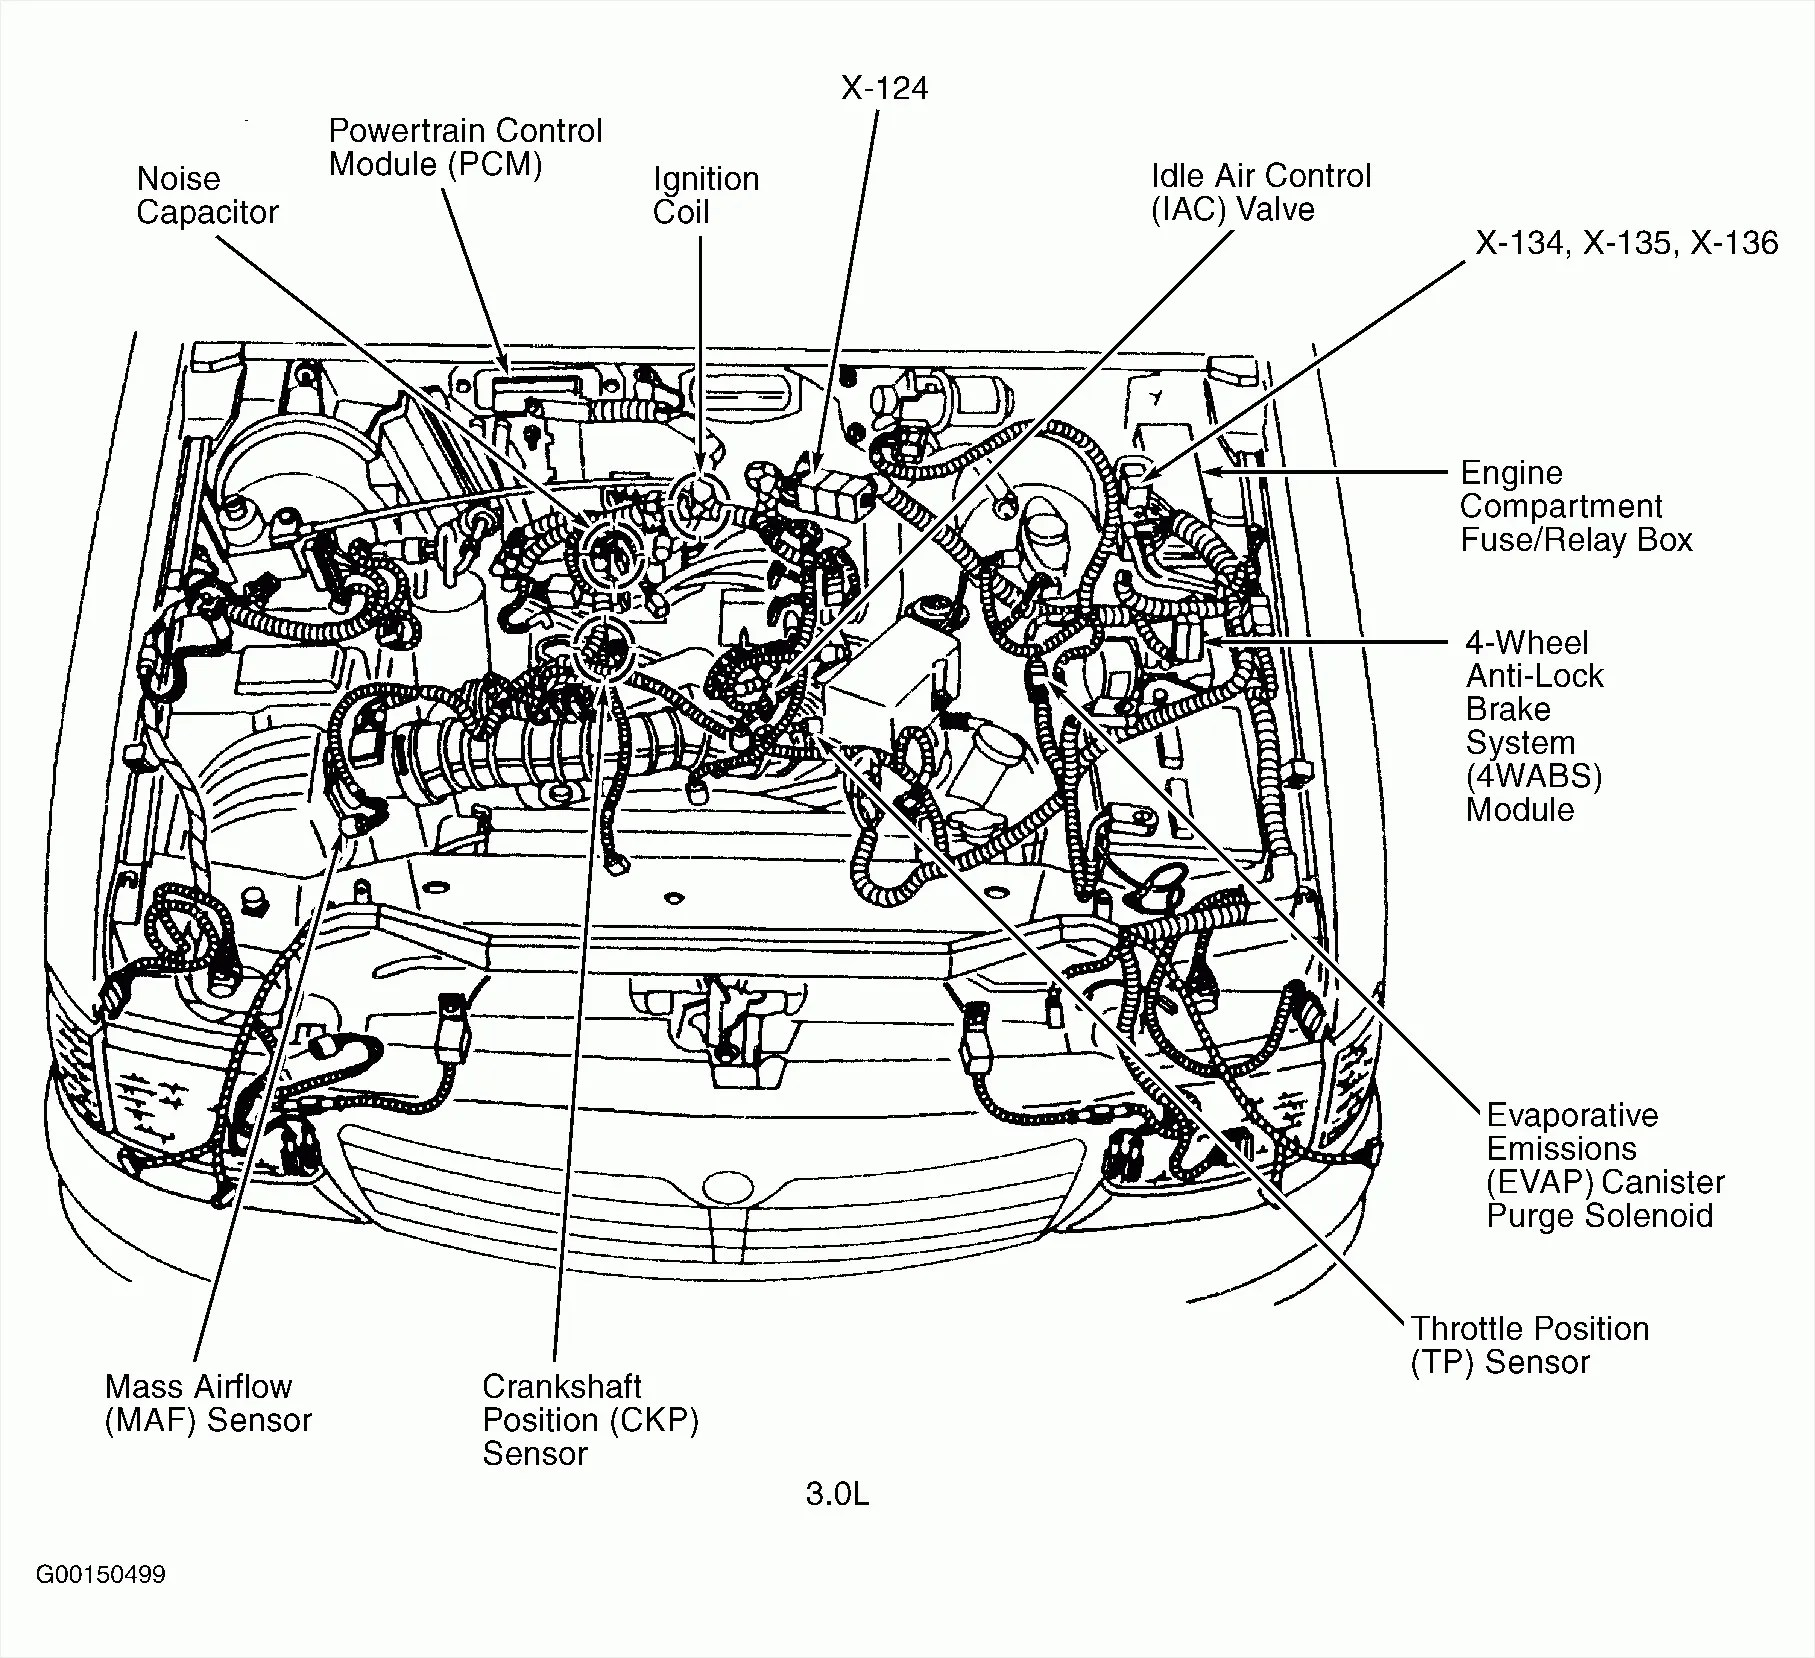 hight resolution of 2003 dodge caravan 3 3 ignition coil wiring schematic wiring 2003 dodge caravan engine diagram